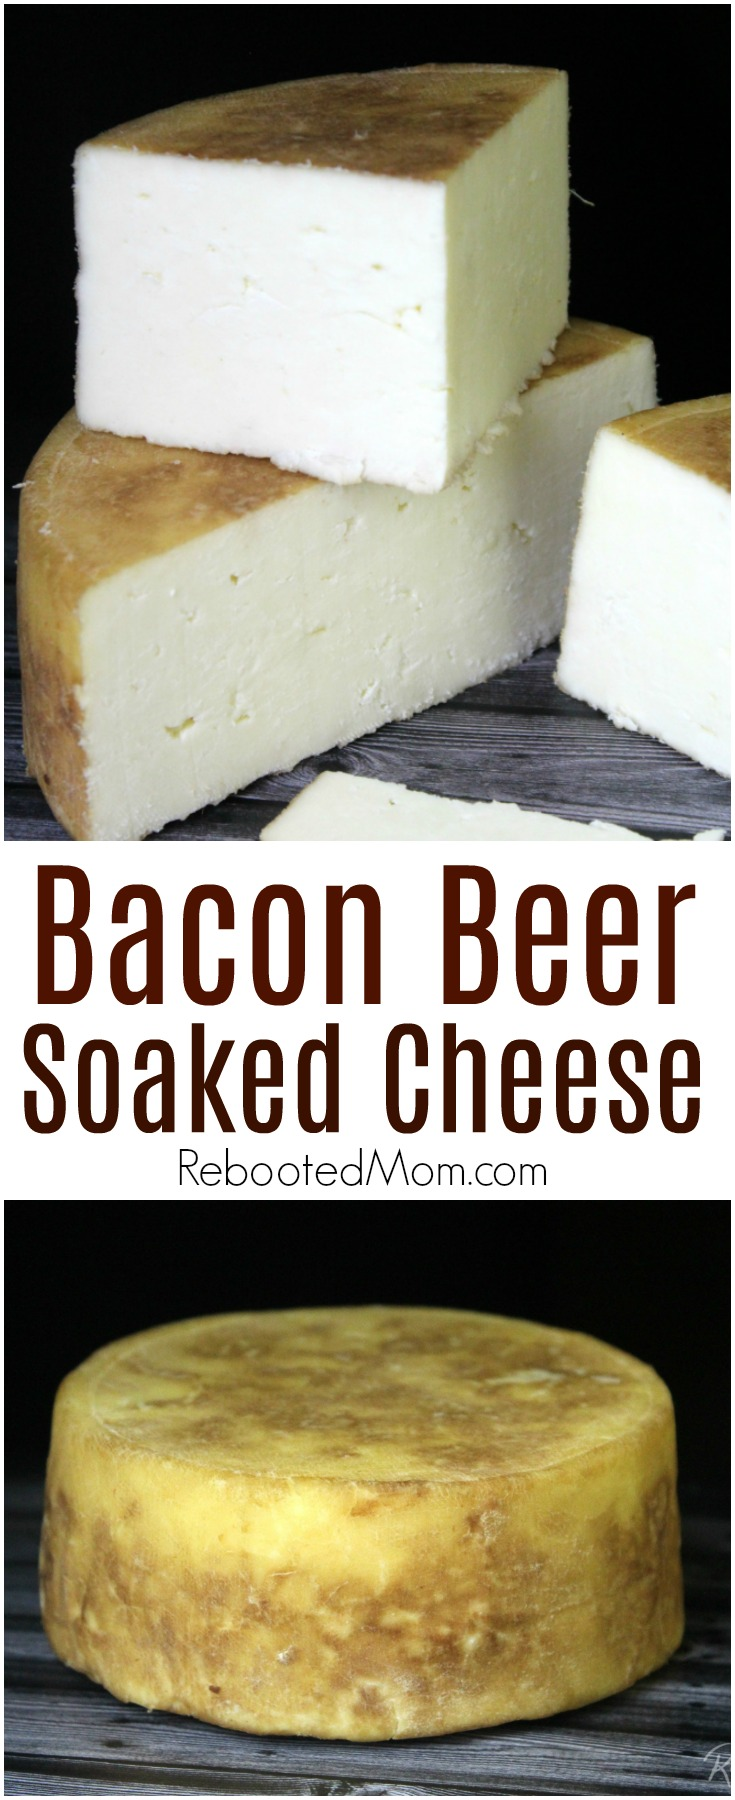 Bacon beer soaked cheese - such a flavorful and rich infusion to a fresh wheel of your favorite creamy Jack cheese, taking it to new levels! #beer #bacon #cheese #cheesemaking #rawmilk